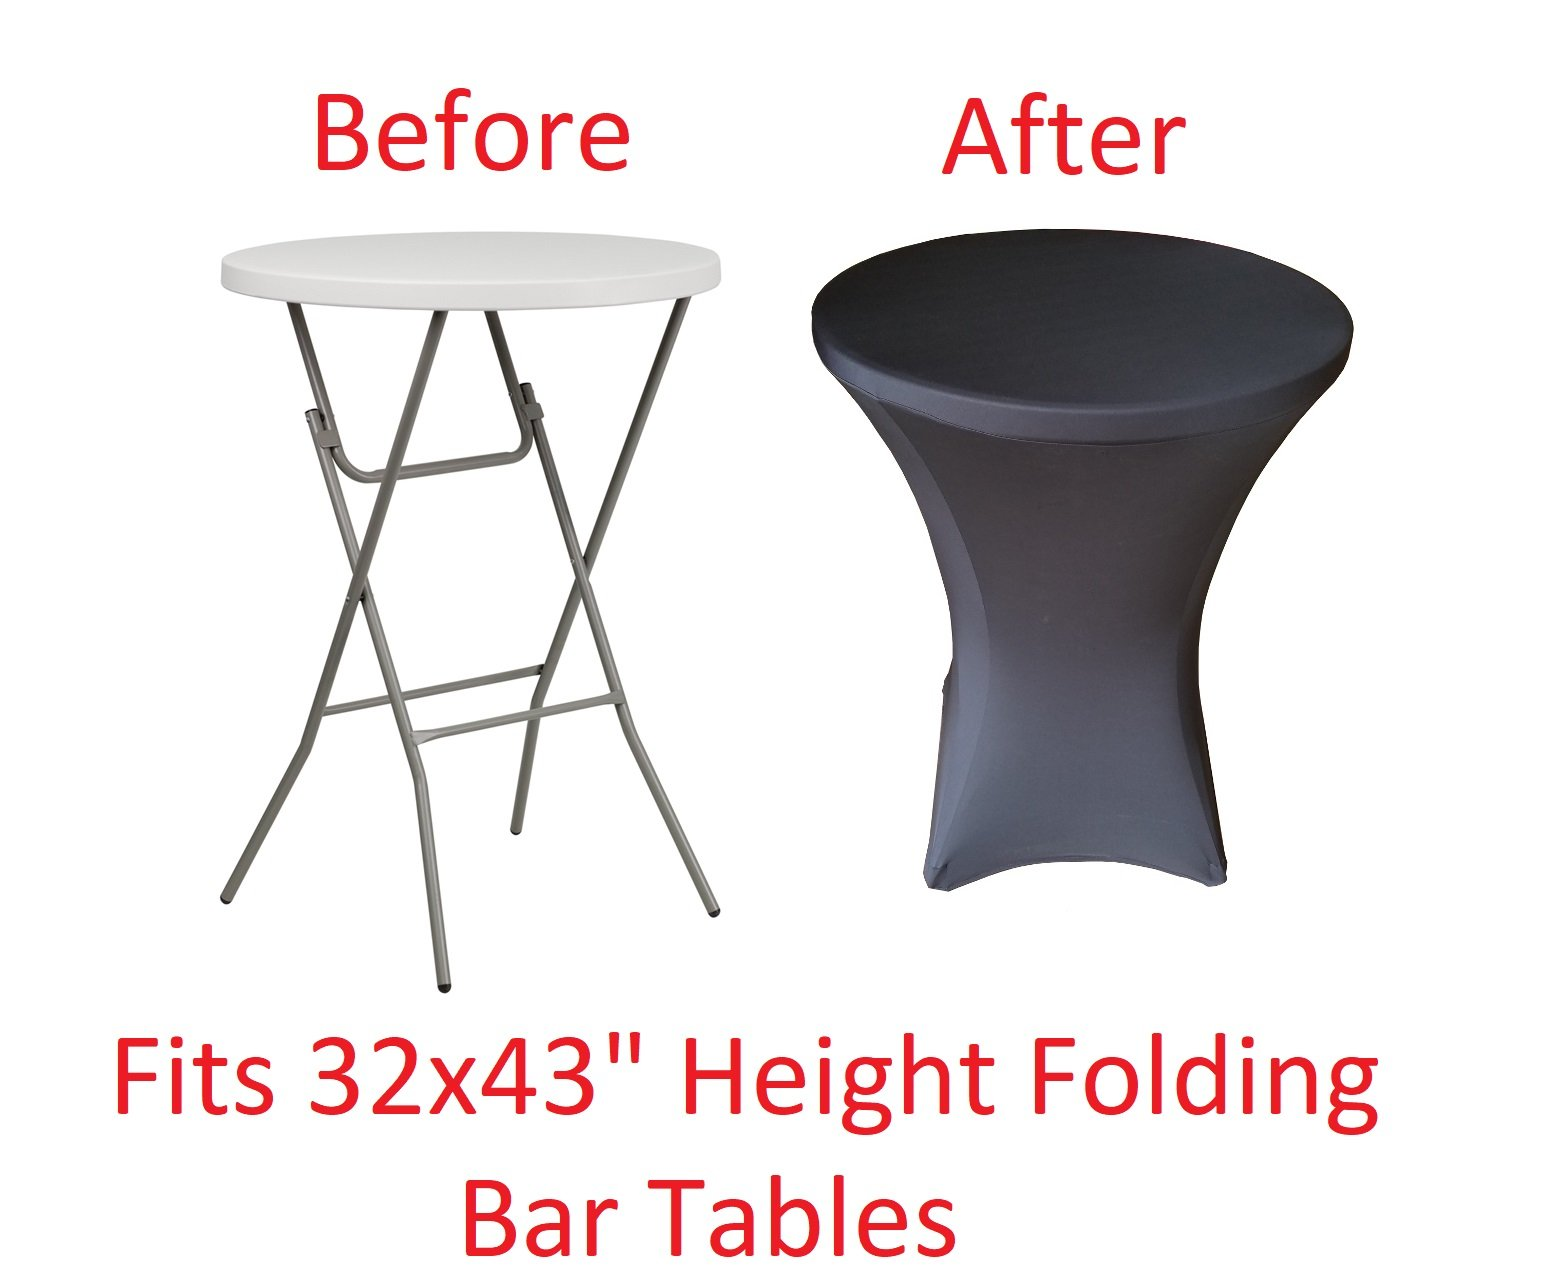 32 Round x 43'' Tall Spandex Fitted Table Cover for Folding Bar Height Tables (Black)